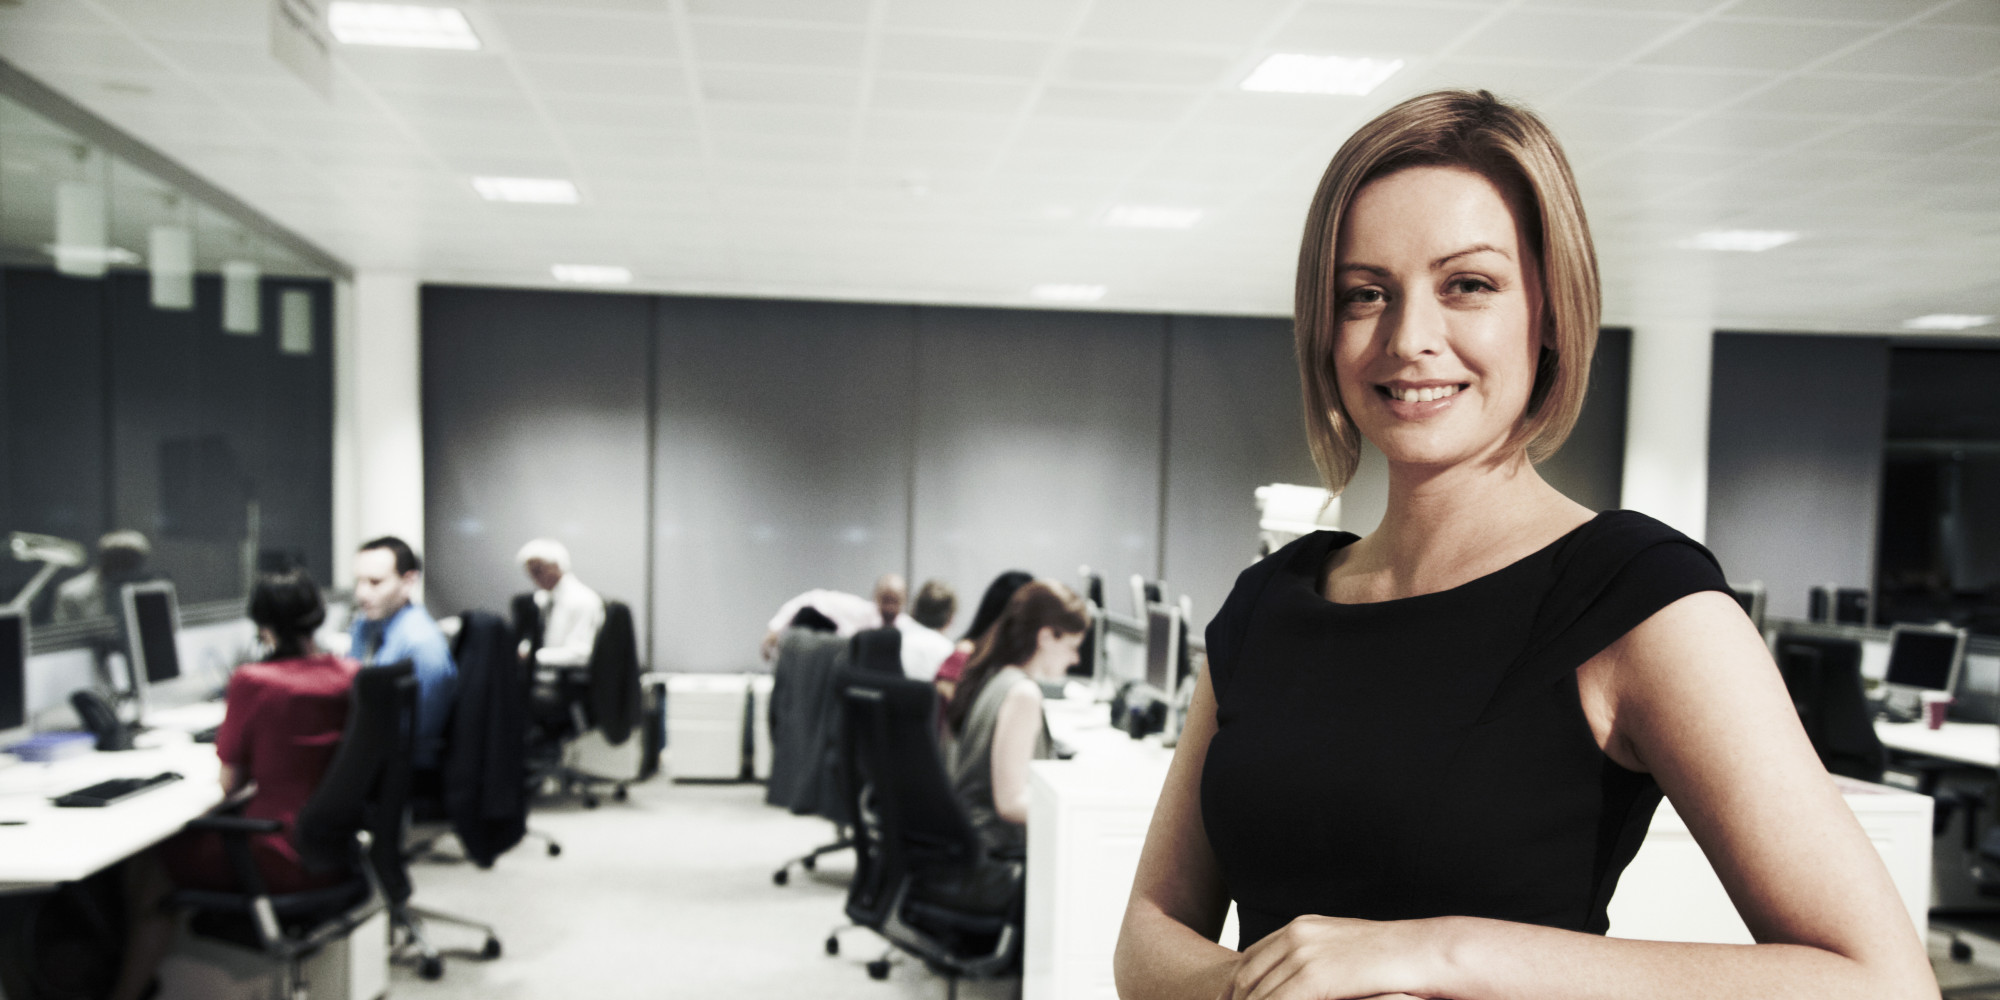 Stop Being So Type A! 5 Career Tips for the Type A Woman ...